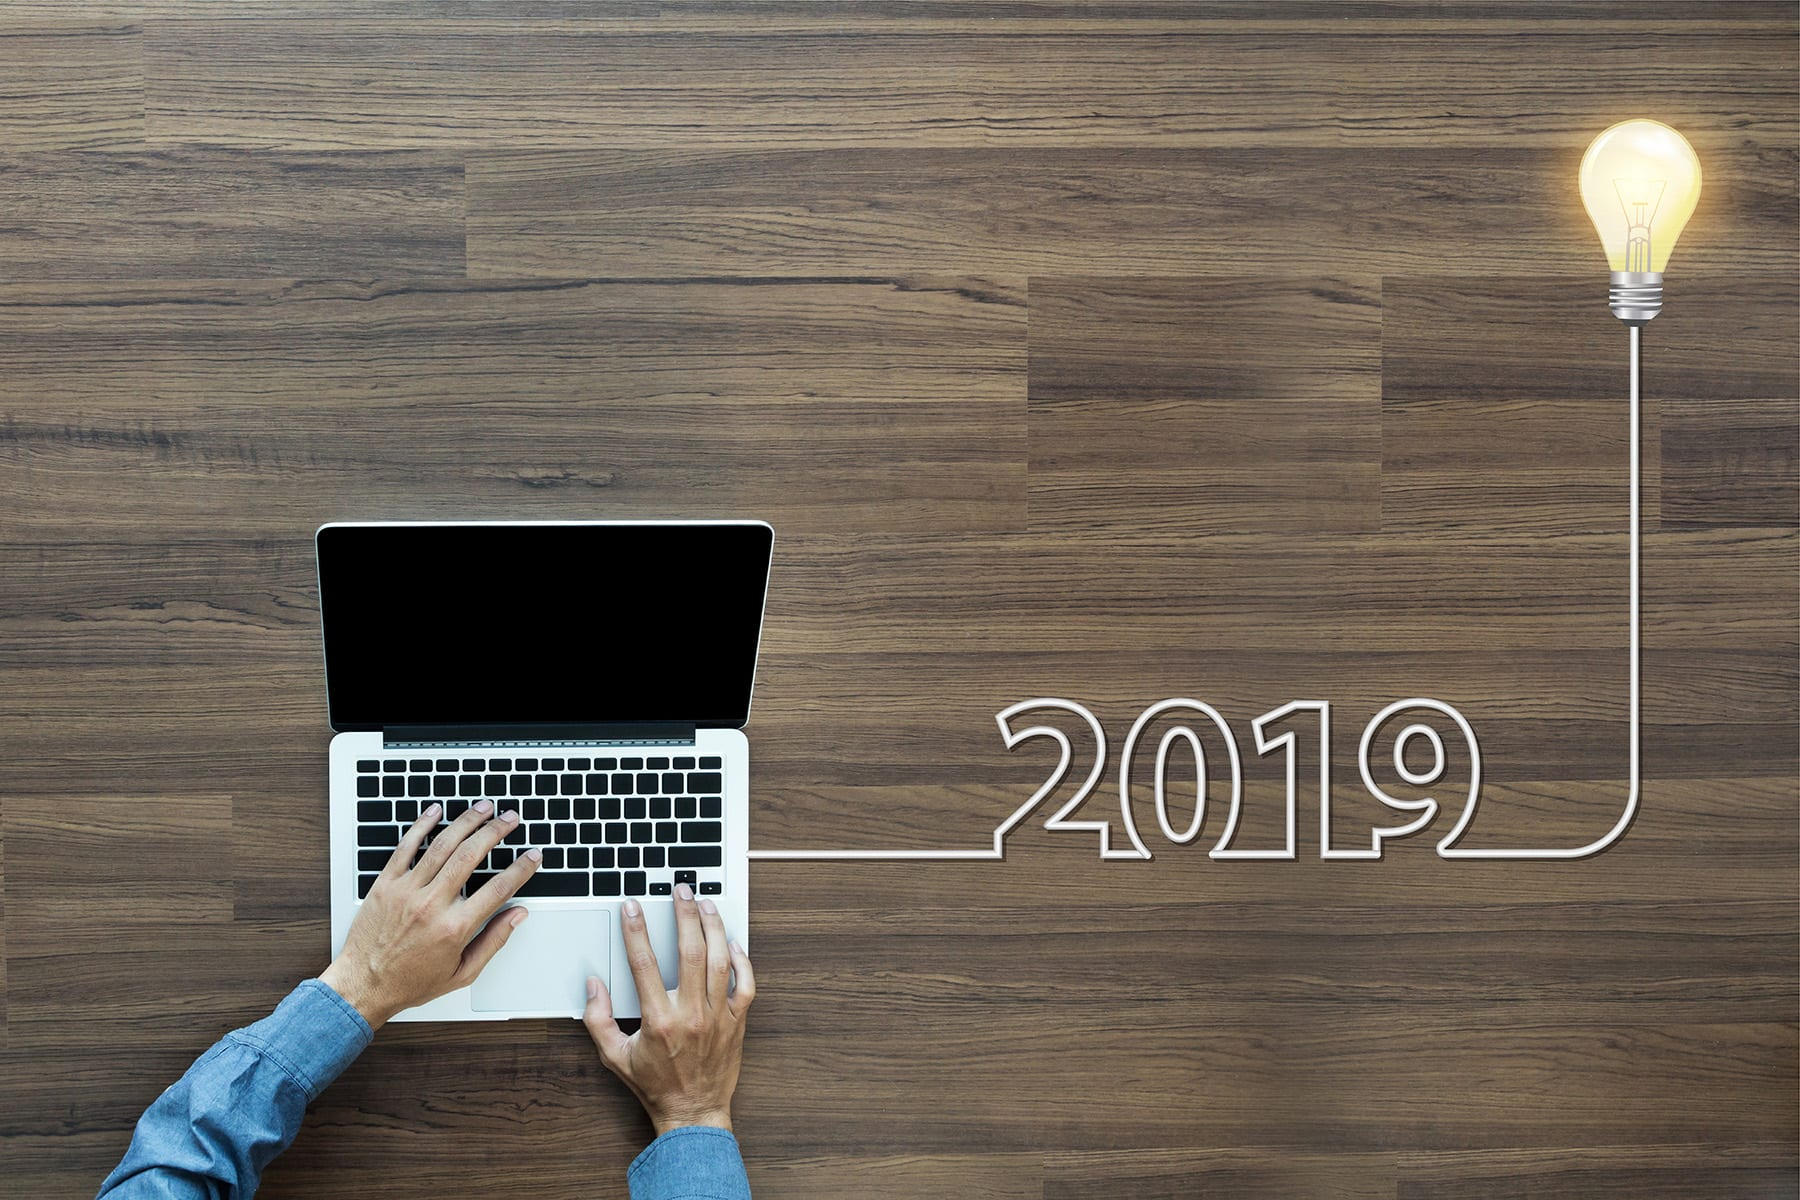 Digital marketing trends for 2019